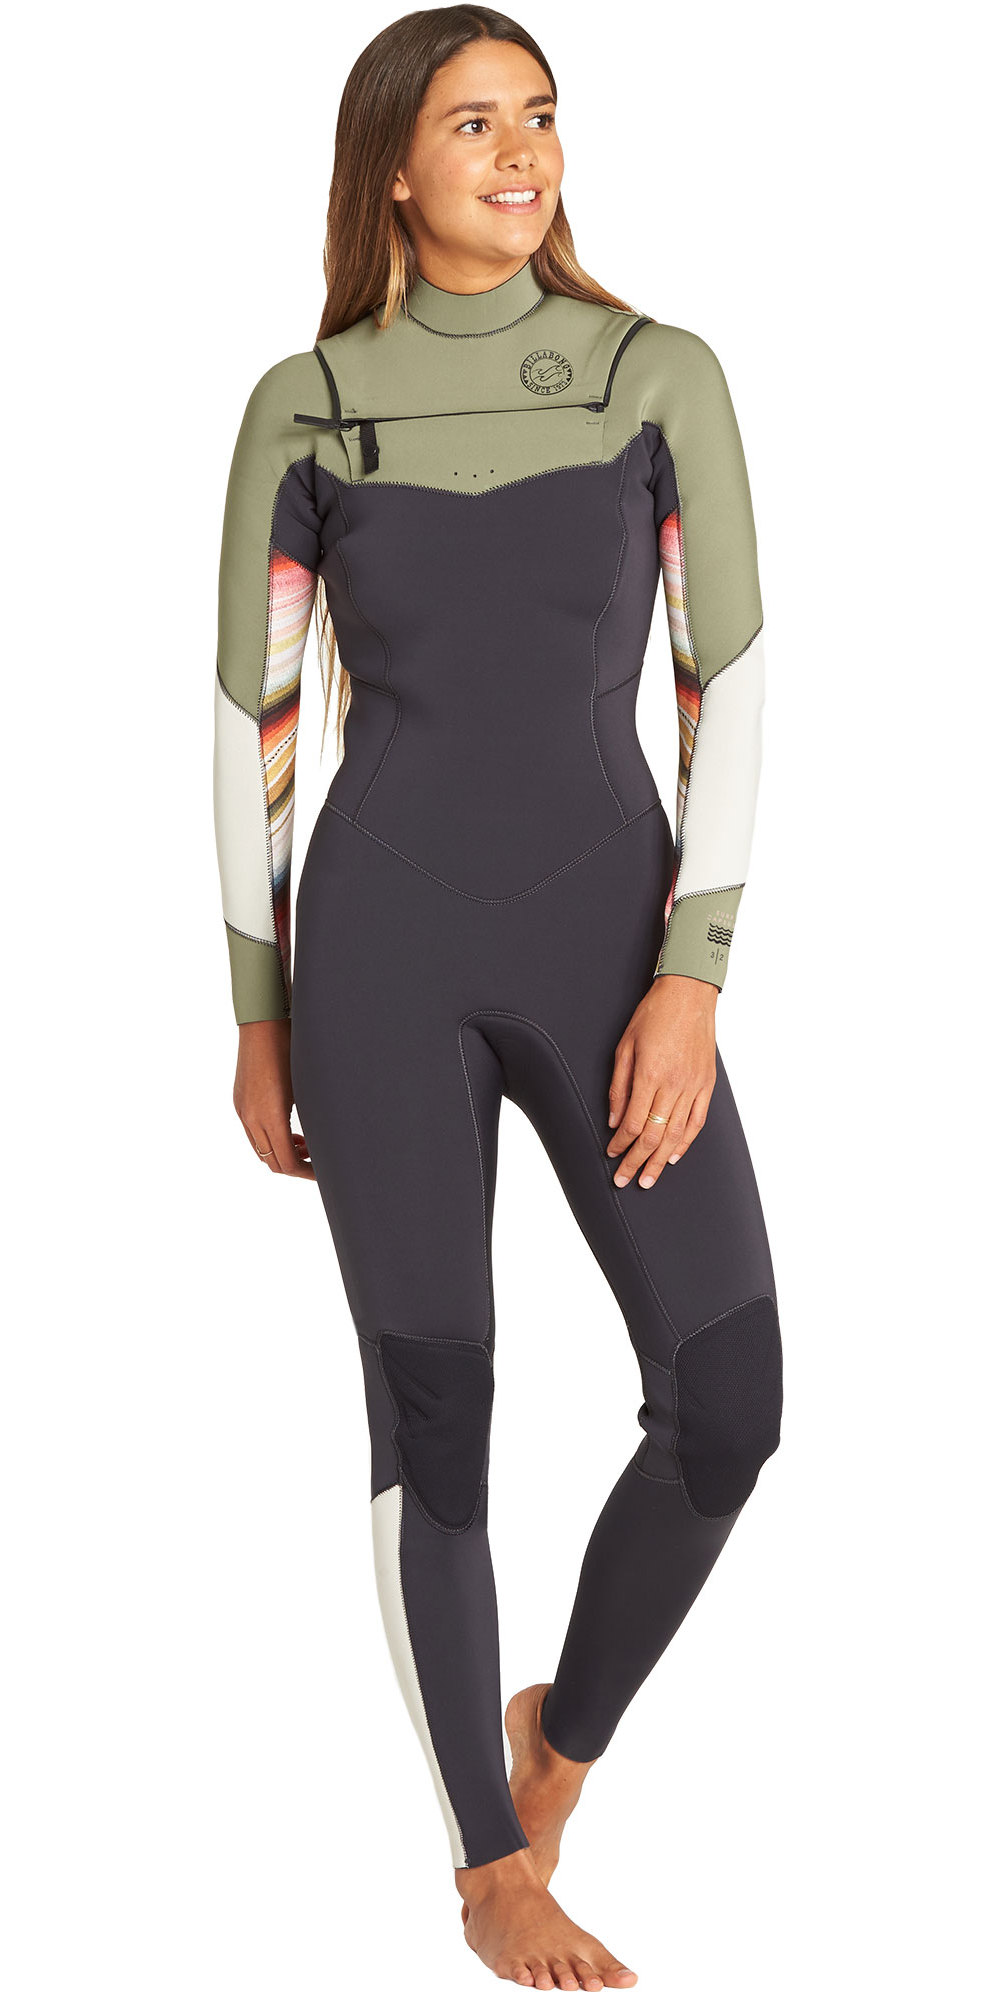 7a8d117f41 2019 Billabong Womens Salty Dayz 3 2mm Chest Zip Wetsuit Serape N43g30 -  N43g30 - Womens - 3mm Wetsuits